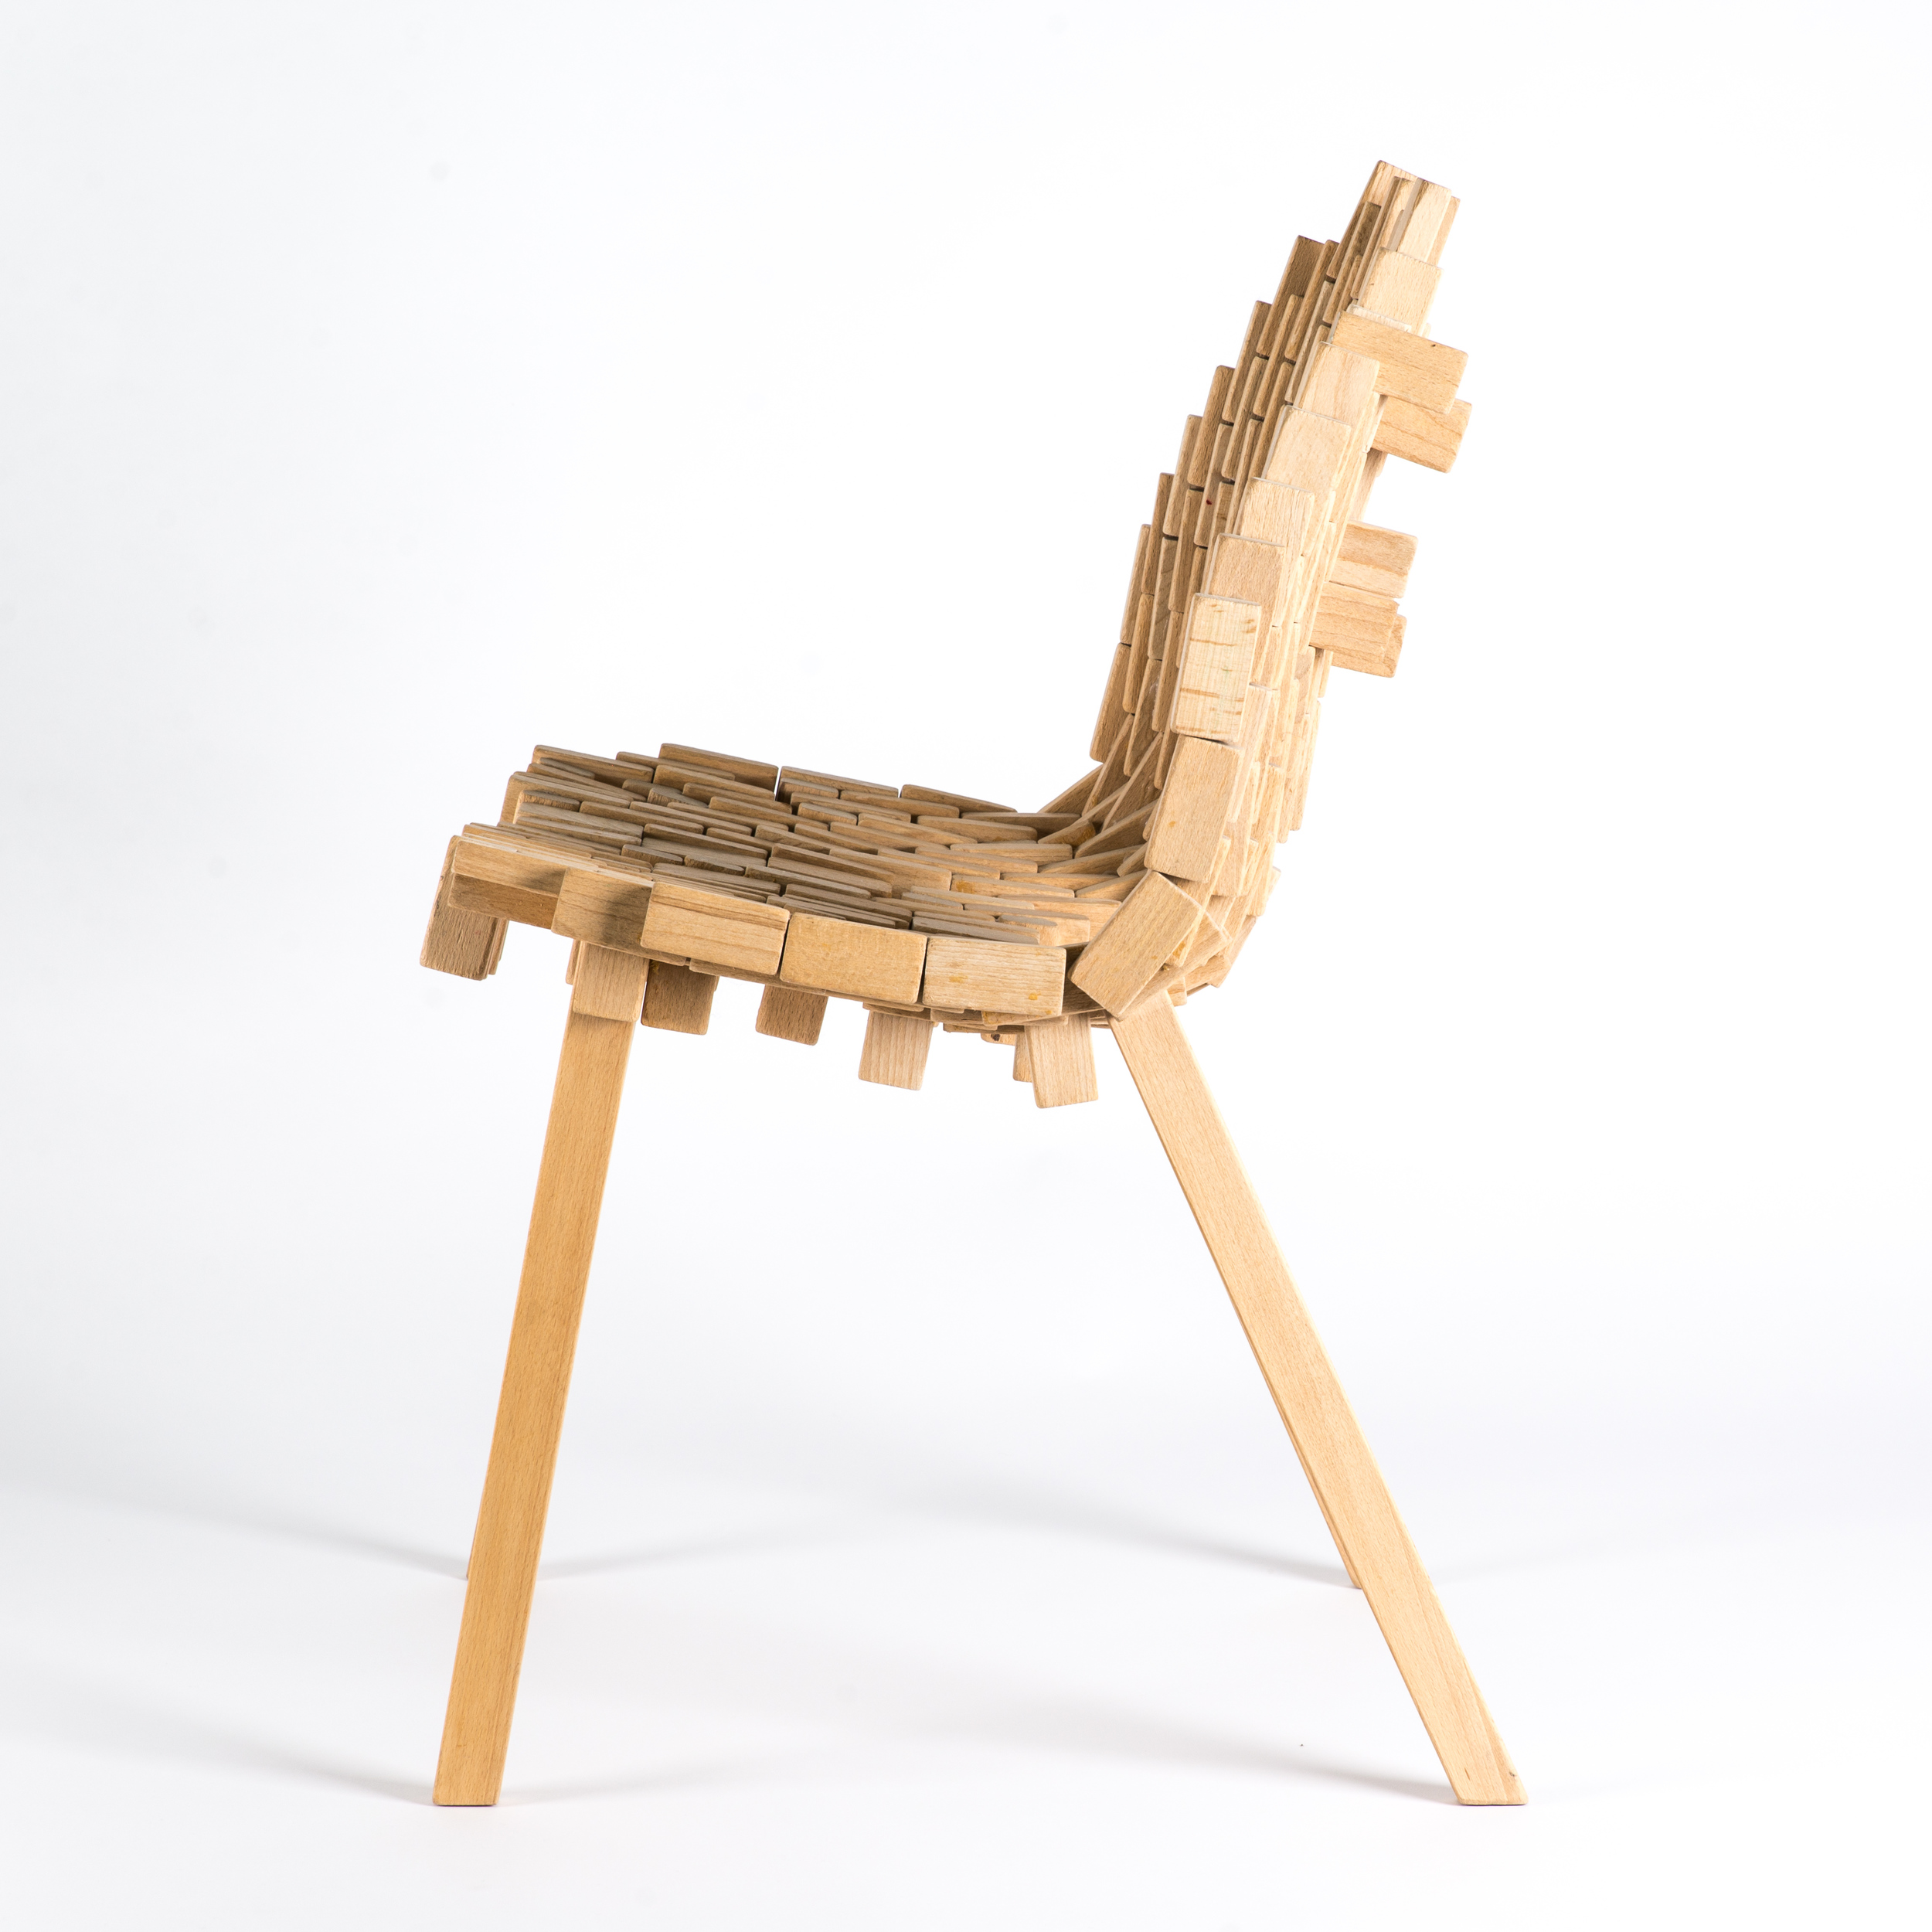 Bricks-chair-01.jpg